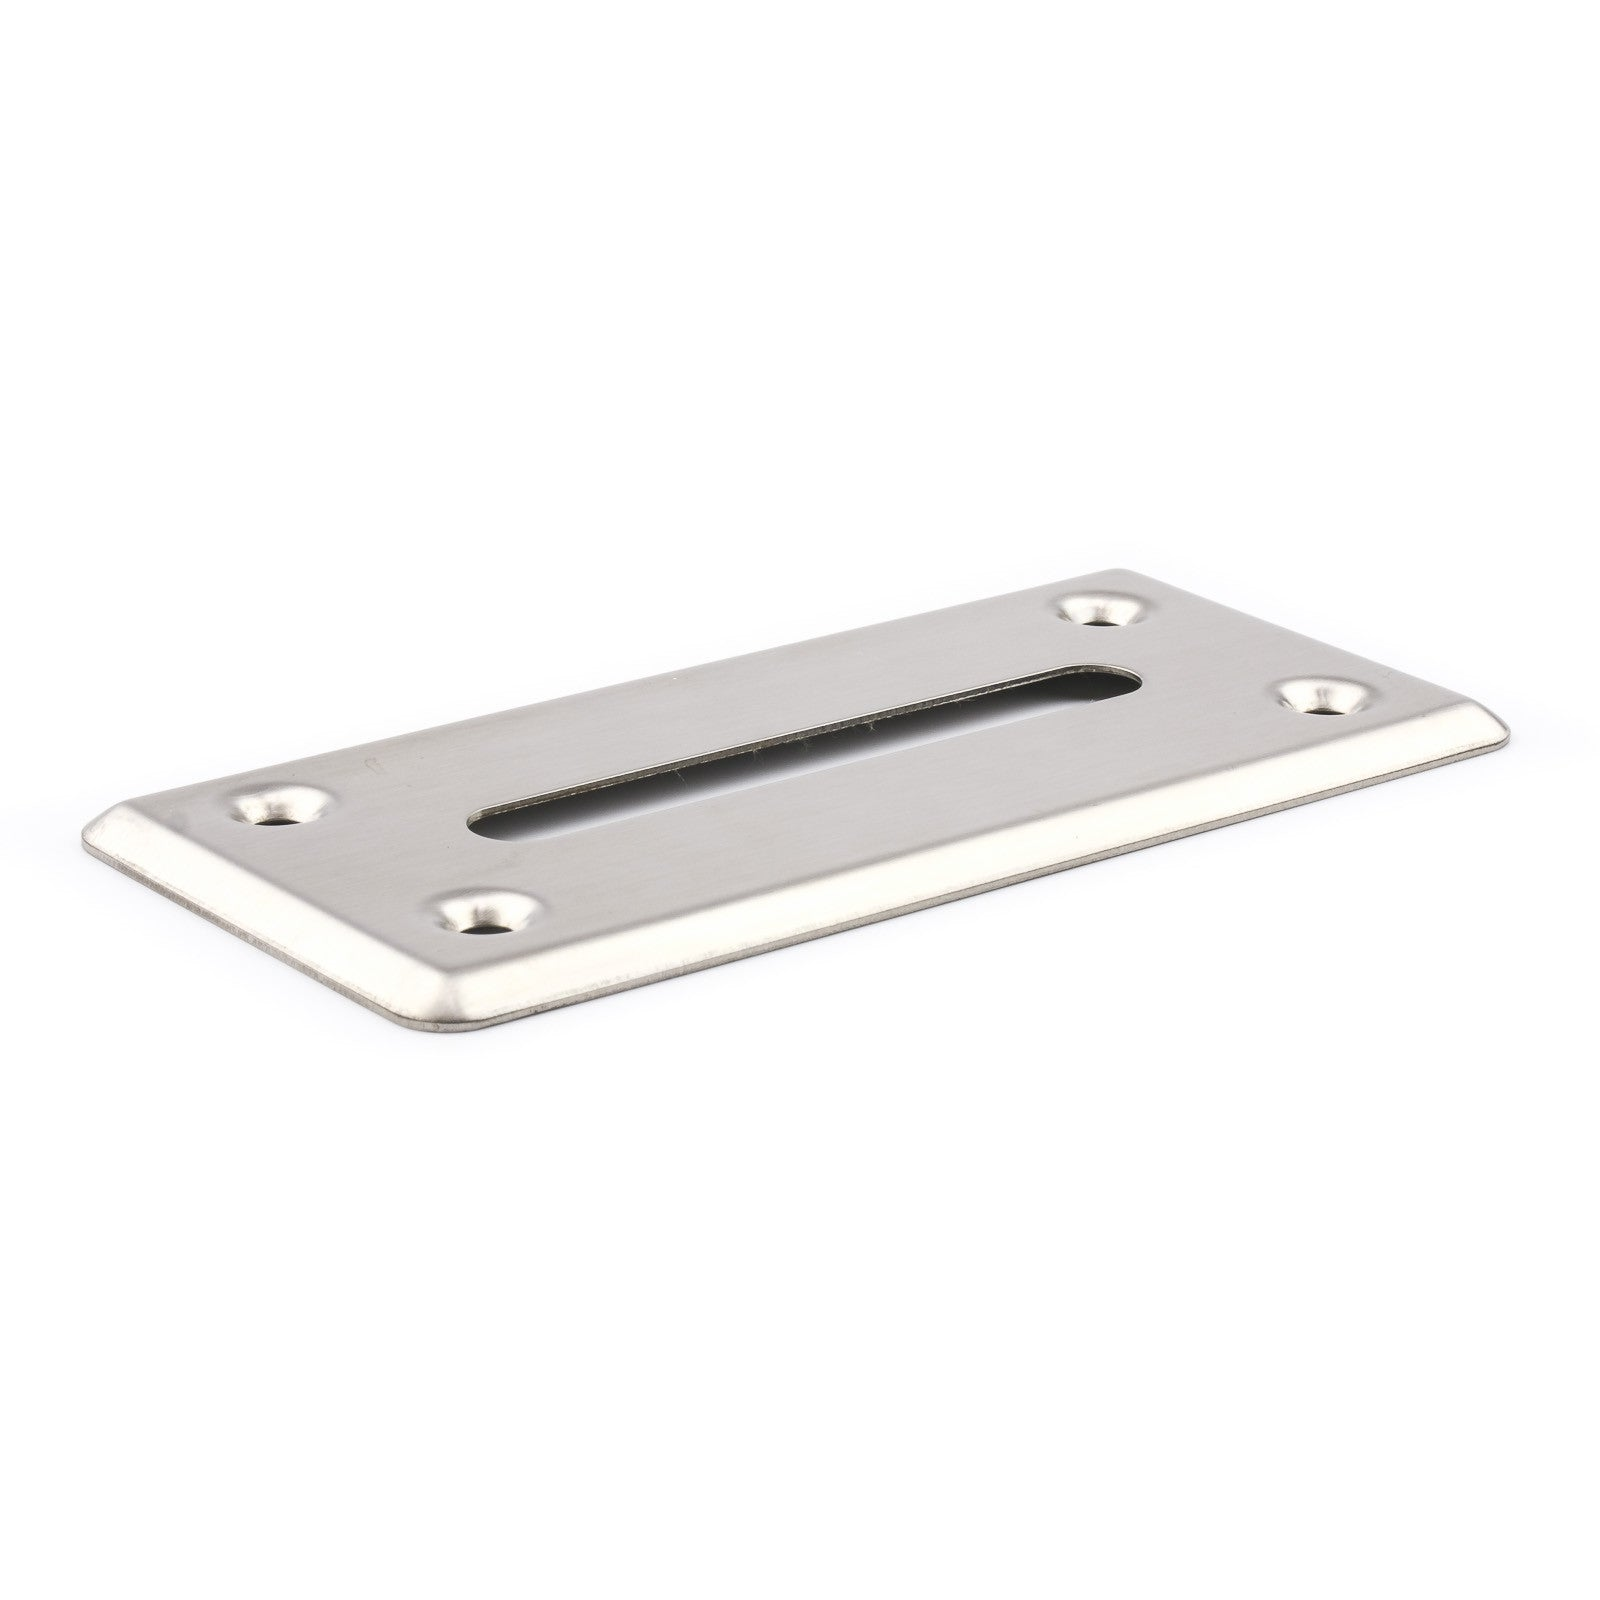 Money Drop Slot Frame - Stainless Steel | Casino Supply